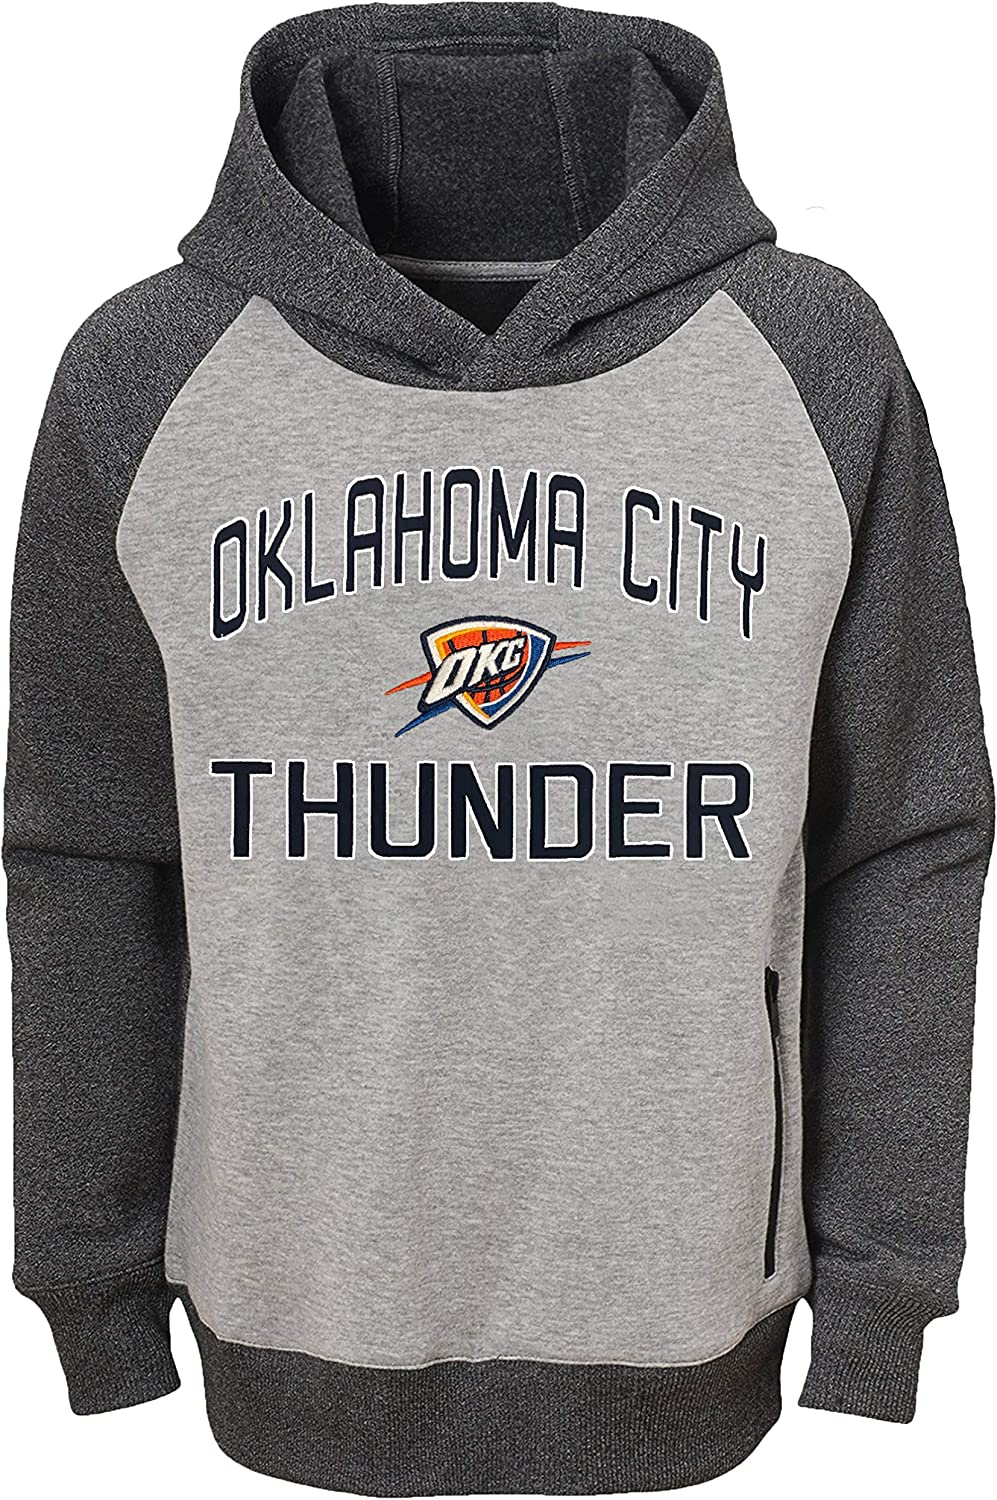 Outerstuff NBA Youth 8-20 Gray Foundation Raglan Pullover Sweatshirt Hoodie